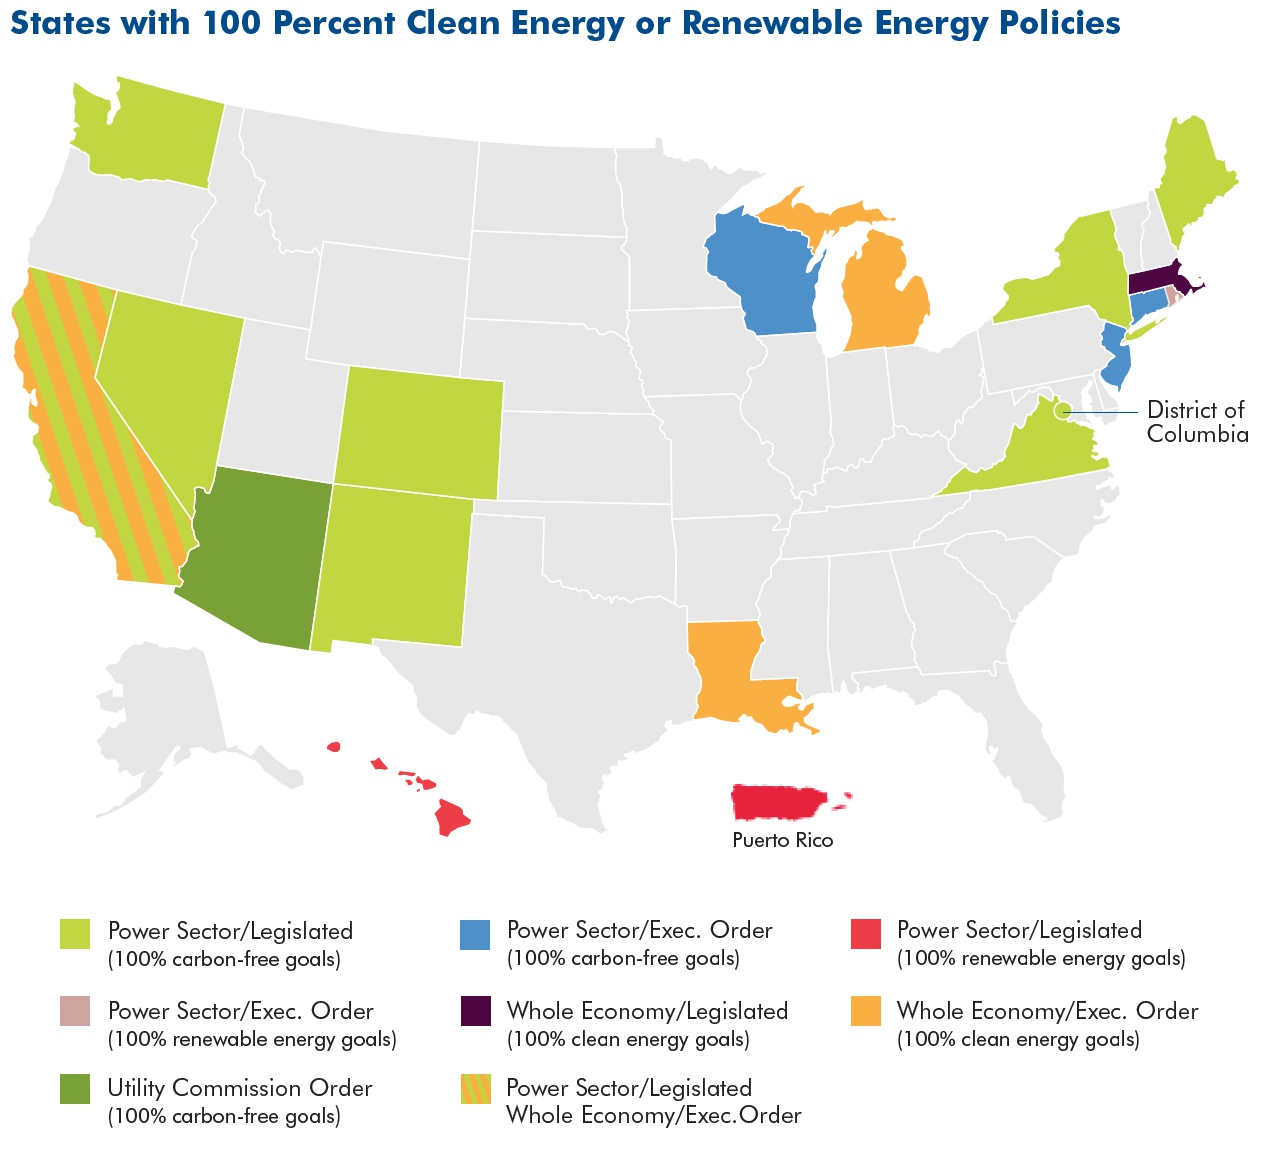 States with 100% Clean Energy goals